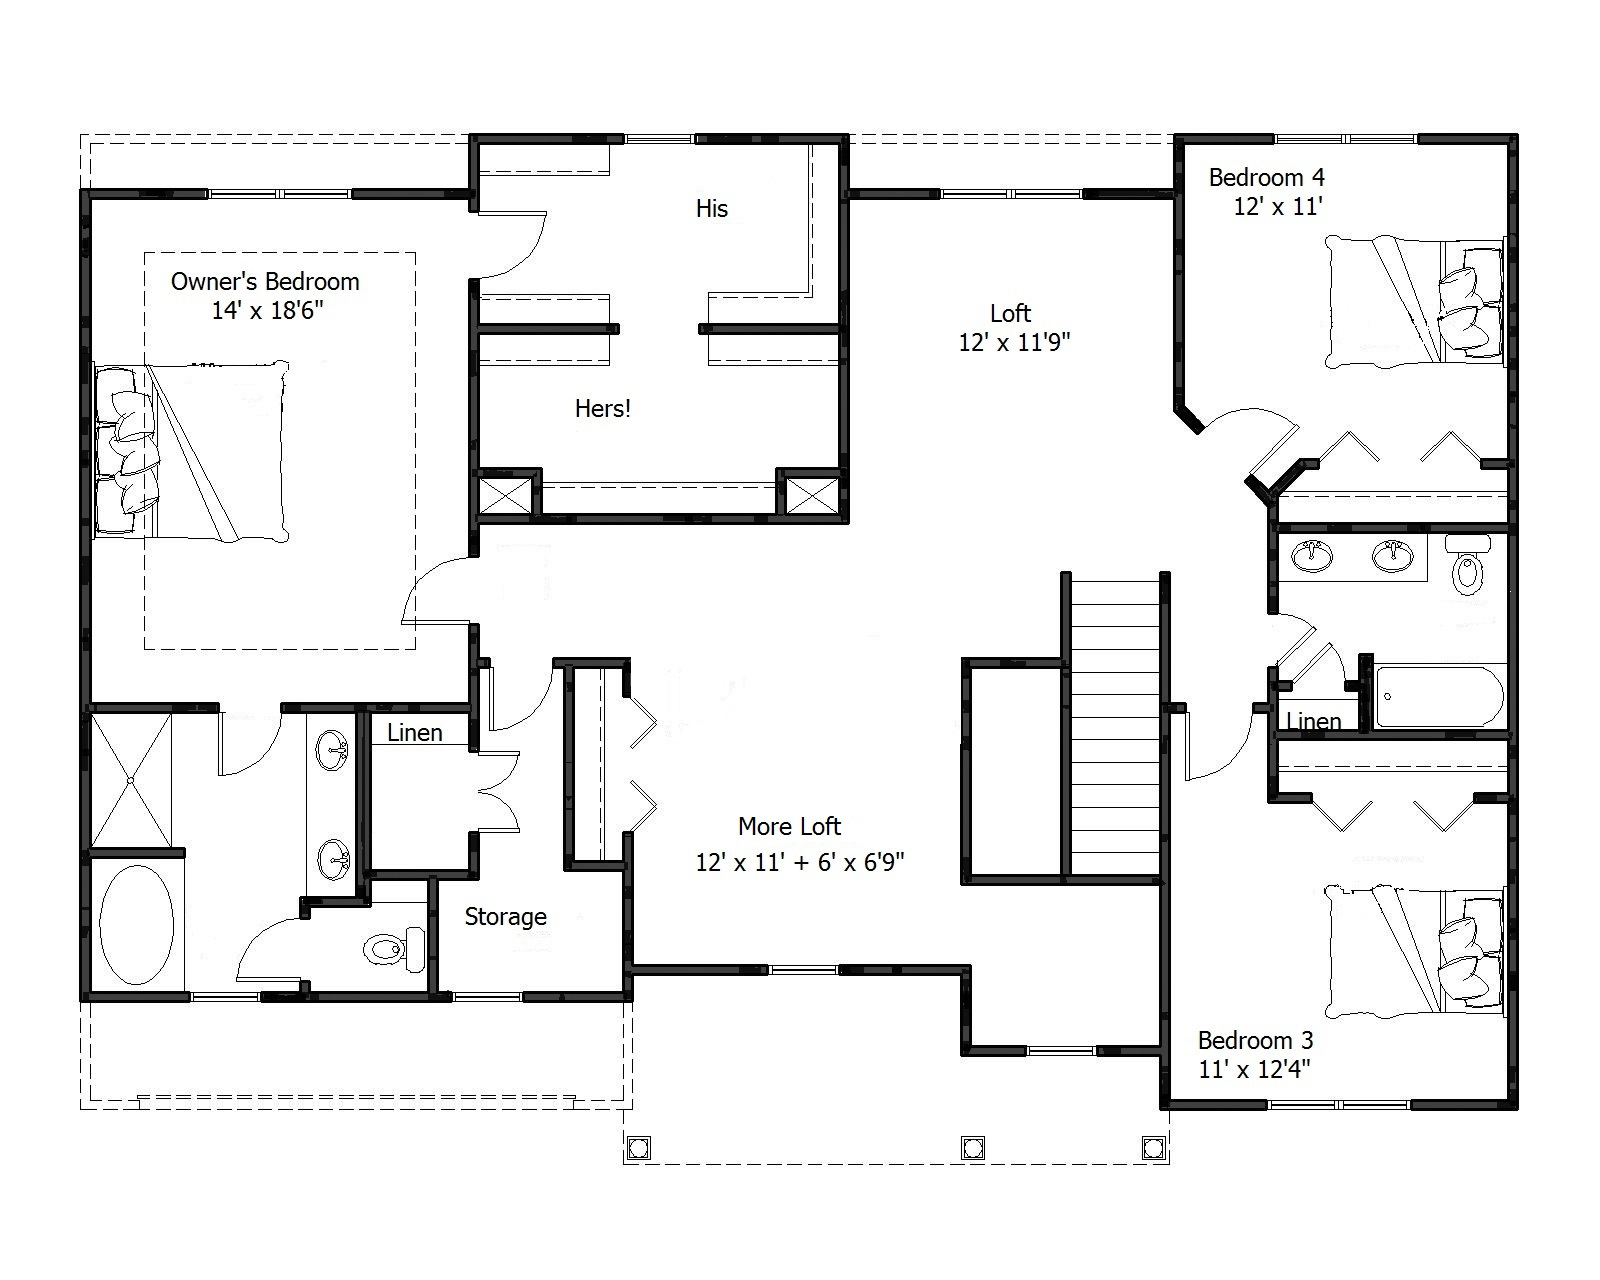 Link to Second Floor Plan Image